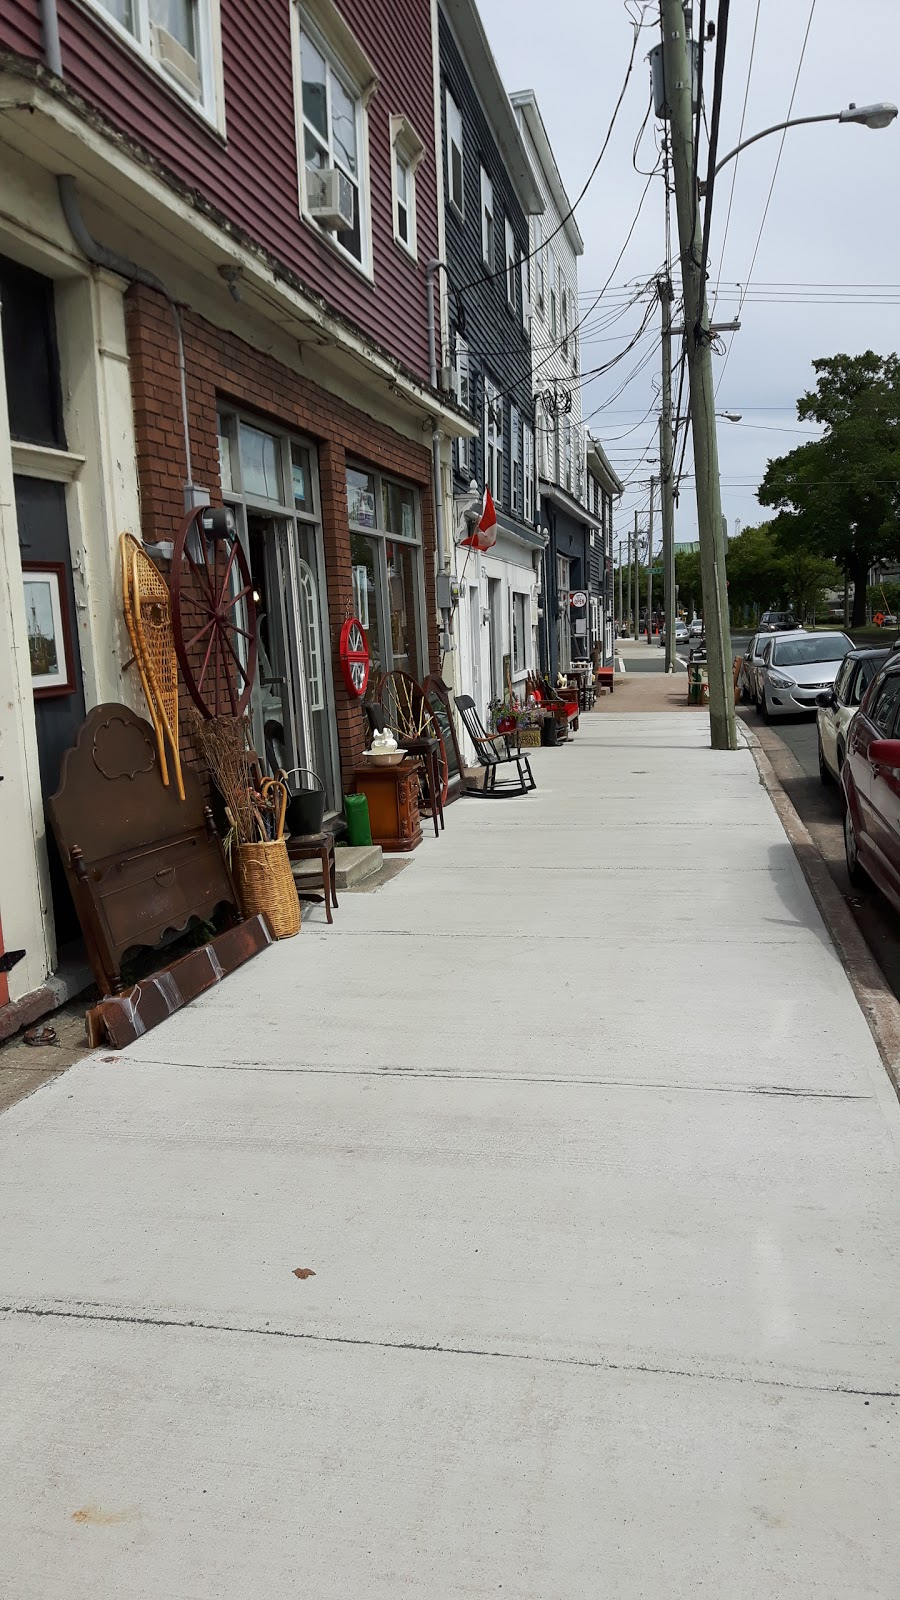 A-Vintage Shop | store | 572 Water St, St. Johns, NL A1E 1B8, Canada | 7097385892 OR +1 709-738-5892